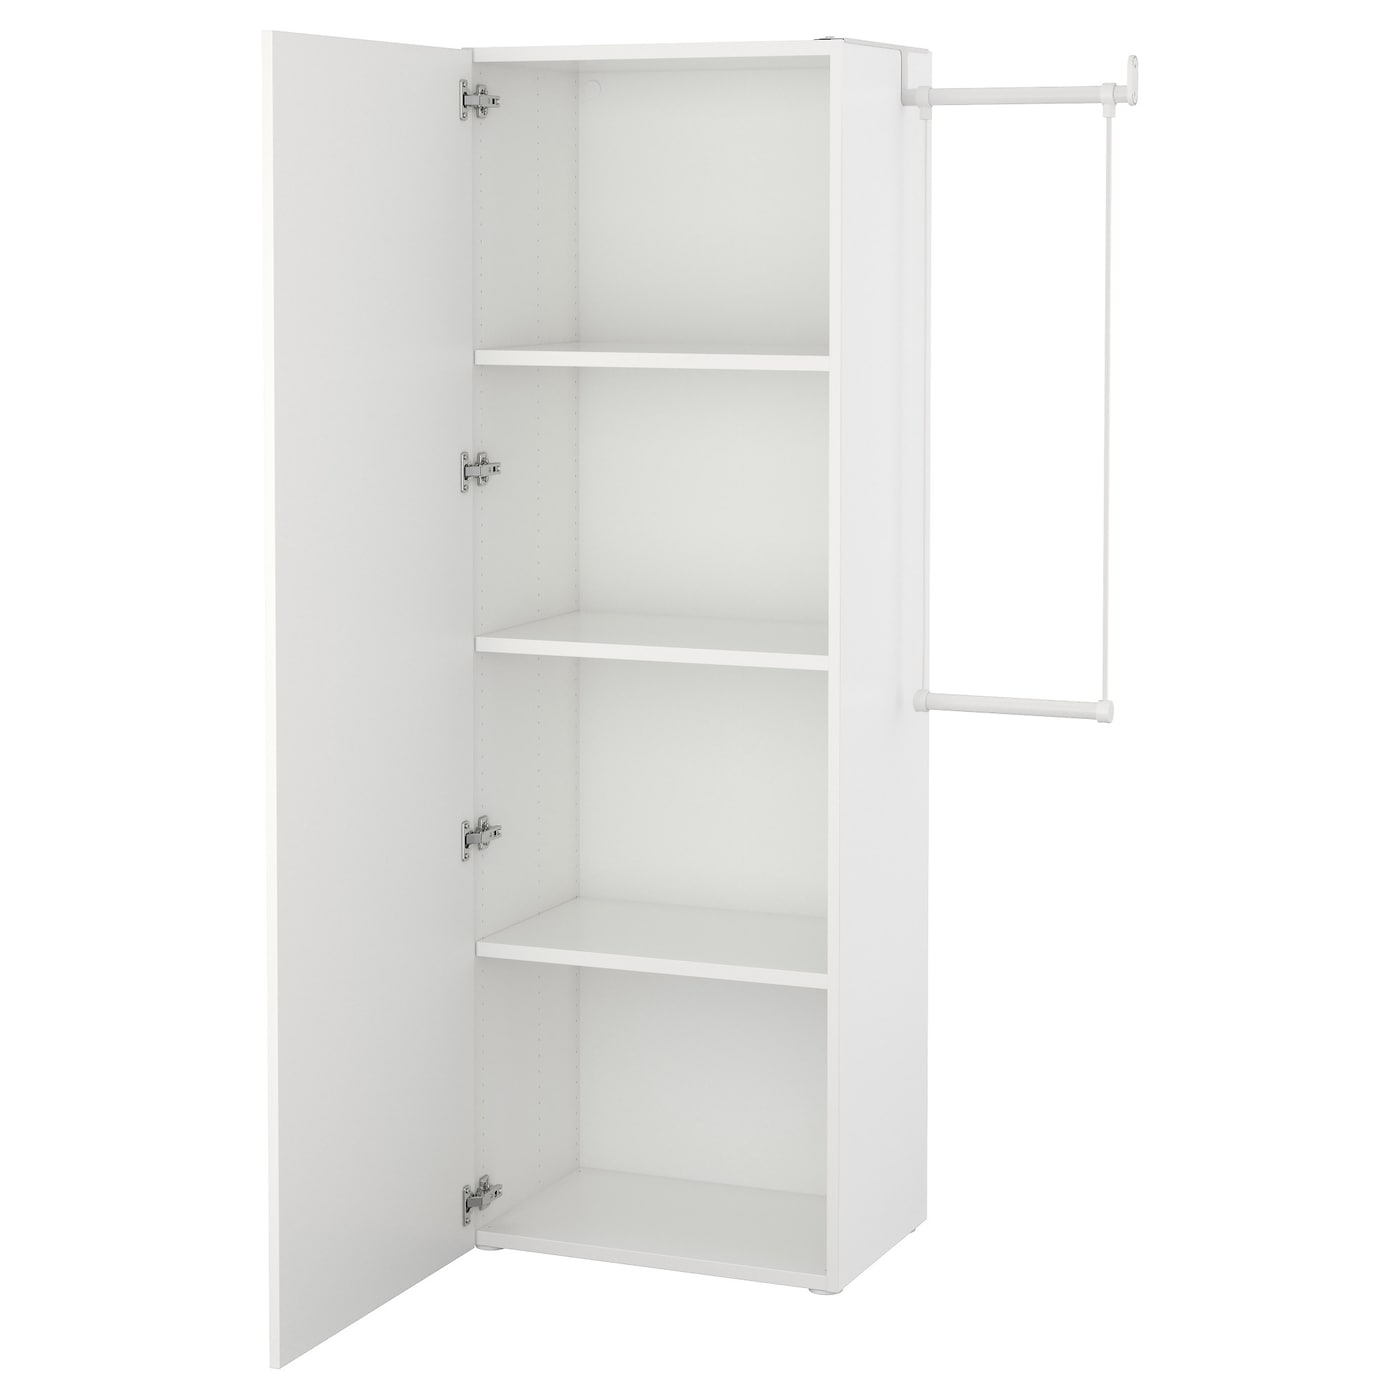 platsa wardrobe white fonnes white 95 120 x 42 x 181 cm ikea. Black Bedroom Furniture Sets. Home Design Ideas